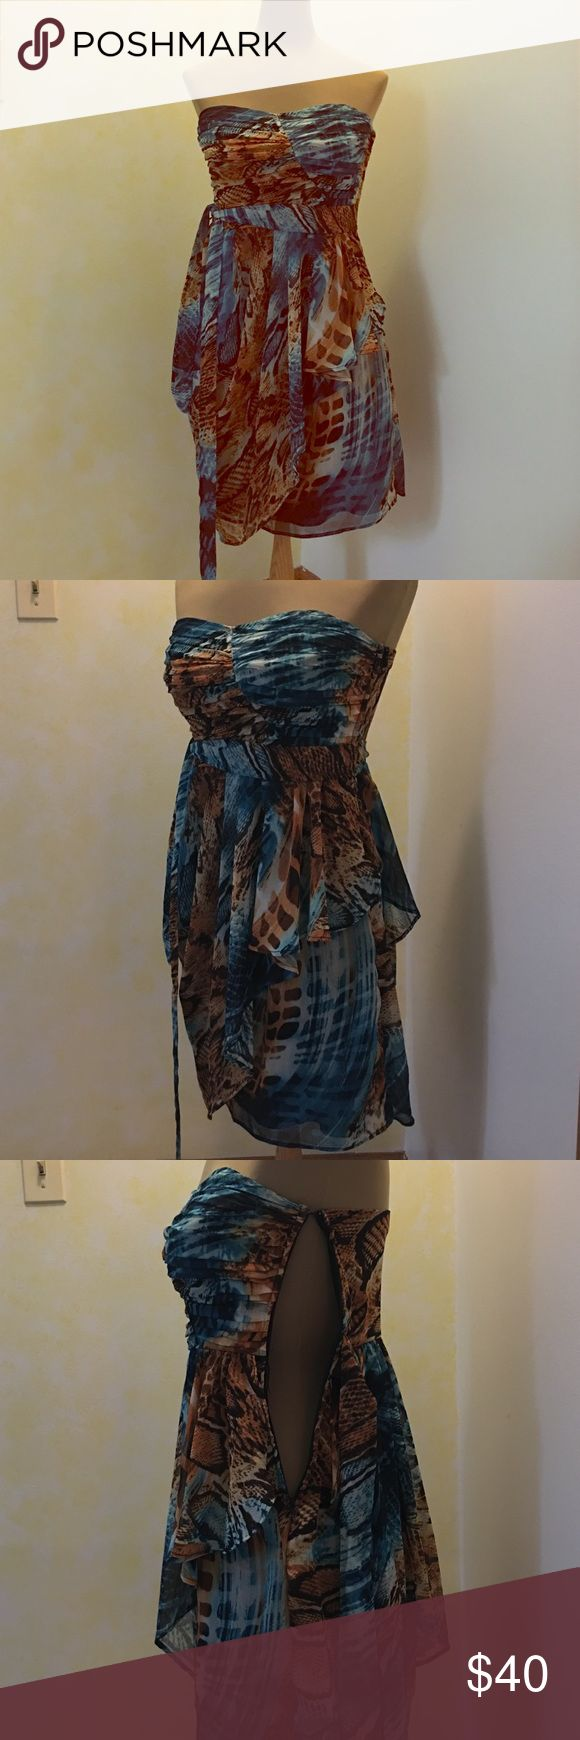 Animal print strapless dress **worn 1X***     Great dress to wear as a guest to a wedding or  with friends! Side zip closure makes getting in and out of dress a breeze ☺️ City Triangles Dresses Strapless